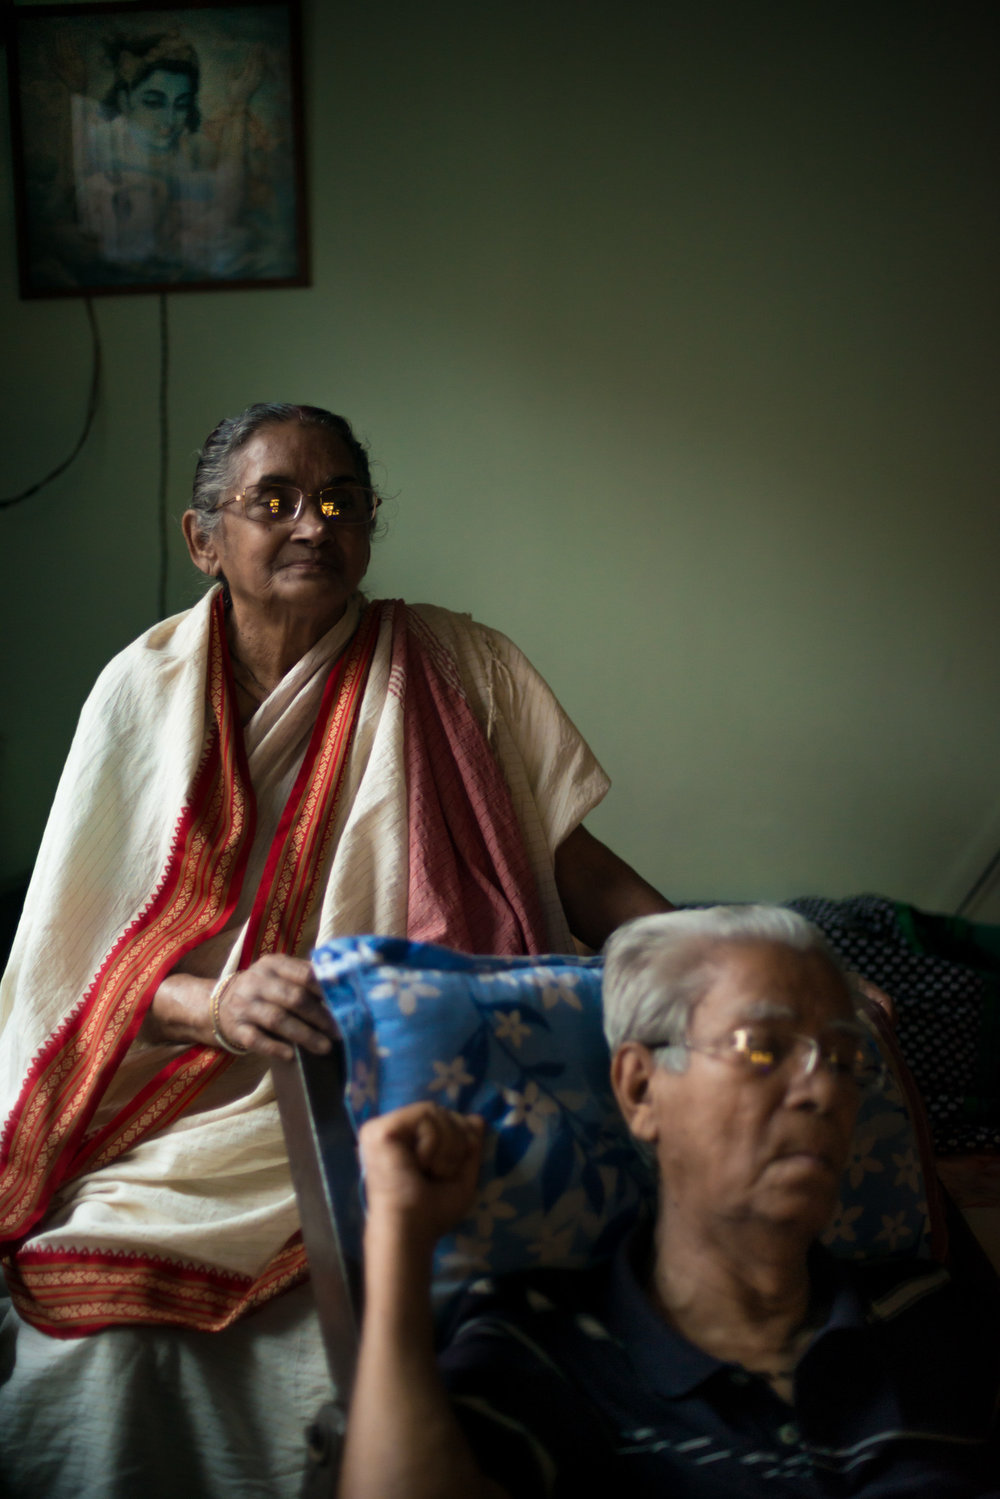 12_Chhandak Pradhan-journal-Living_in_Memory-old_dementia_grandparents.jpg